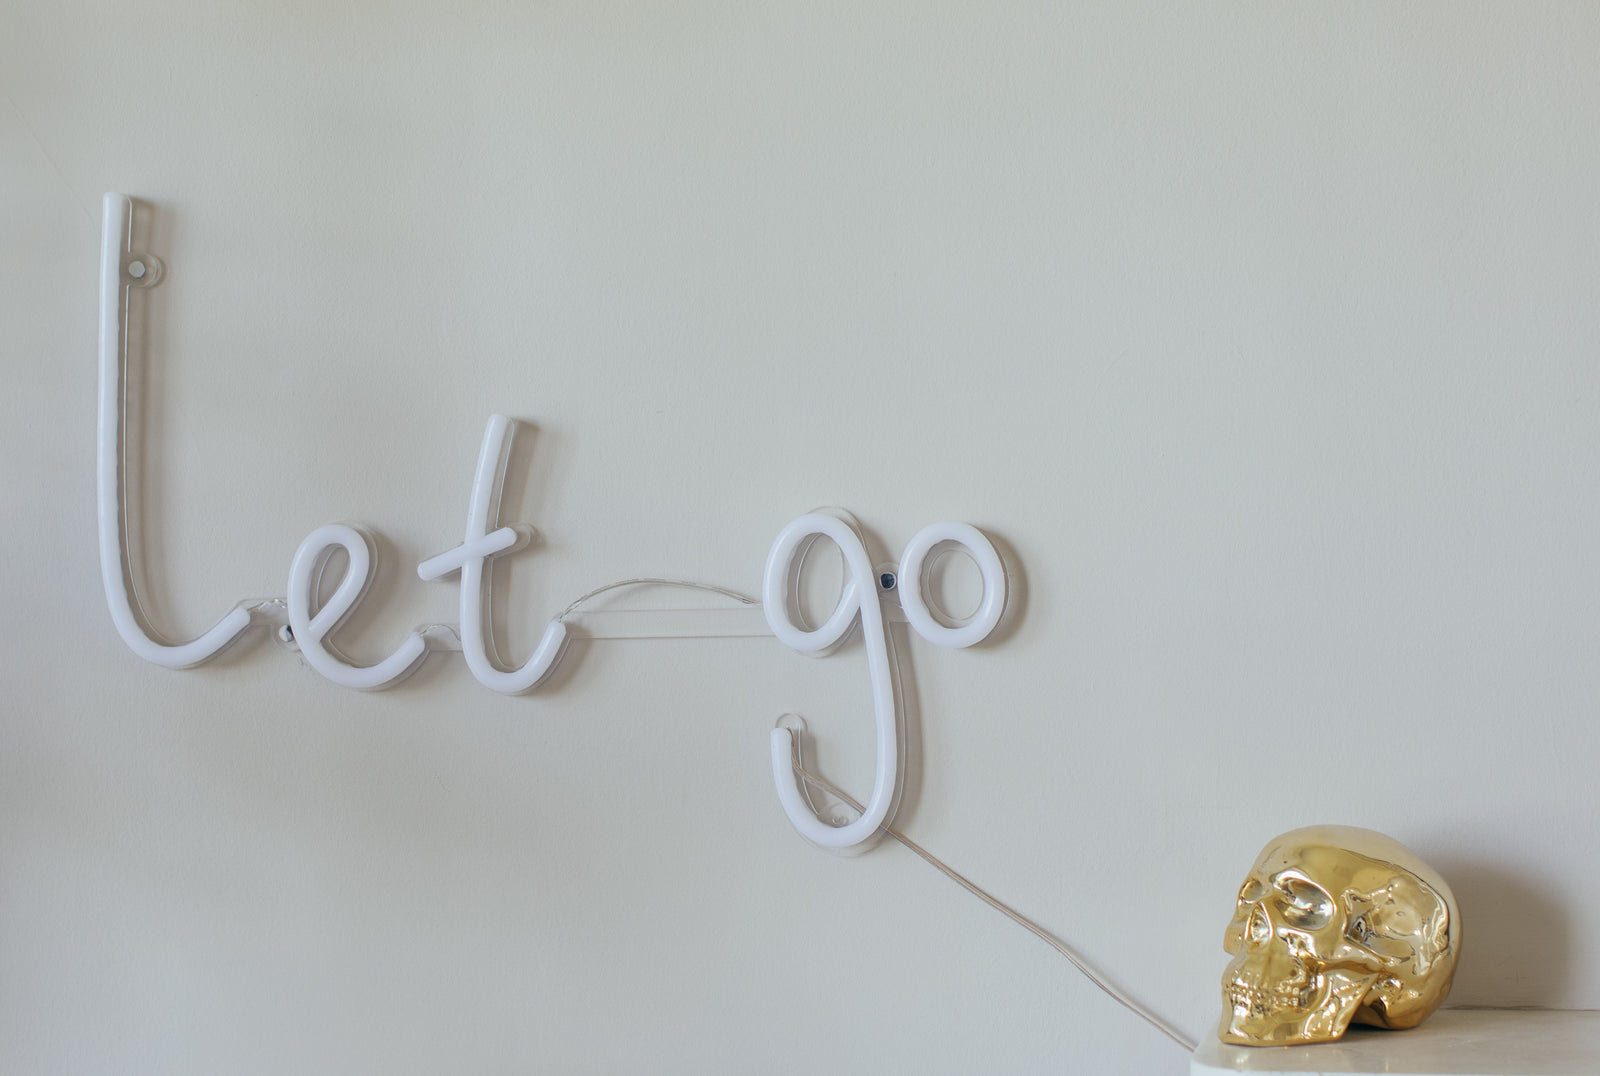 'let go' light